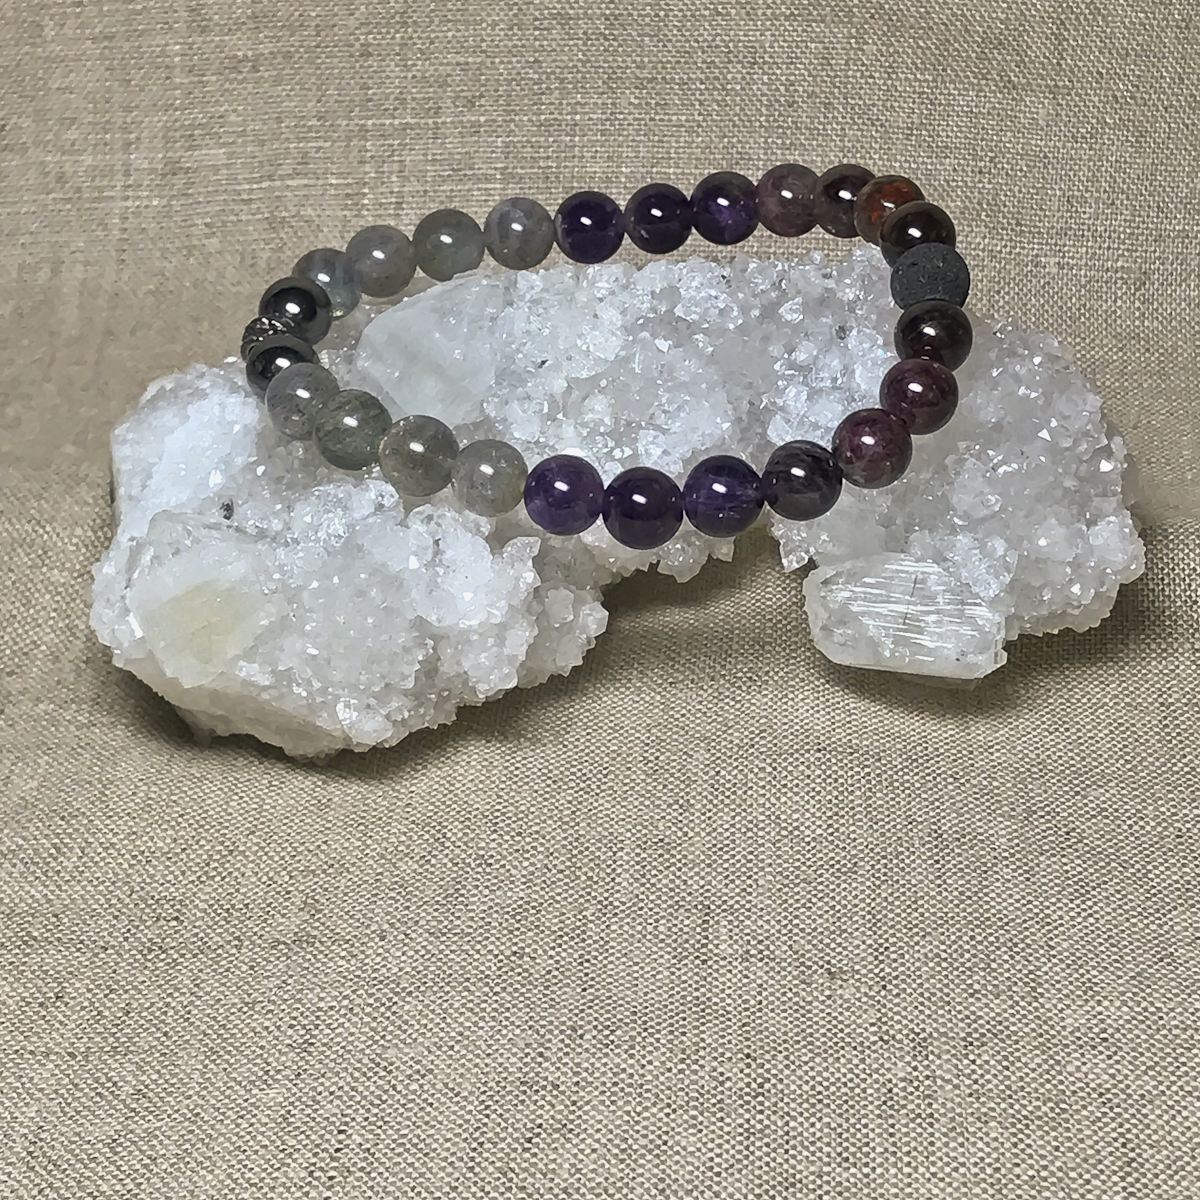 minis gemstone jewellery products mini power product shots amethyst bracelets energy